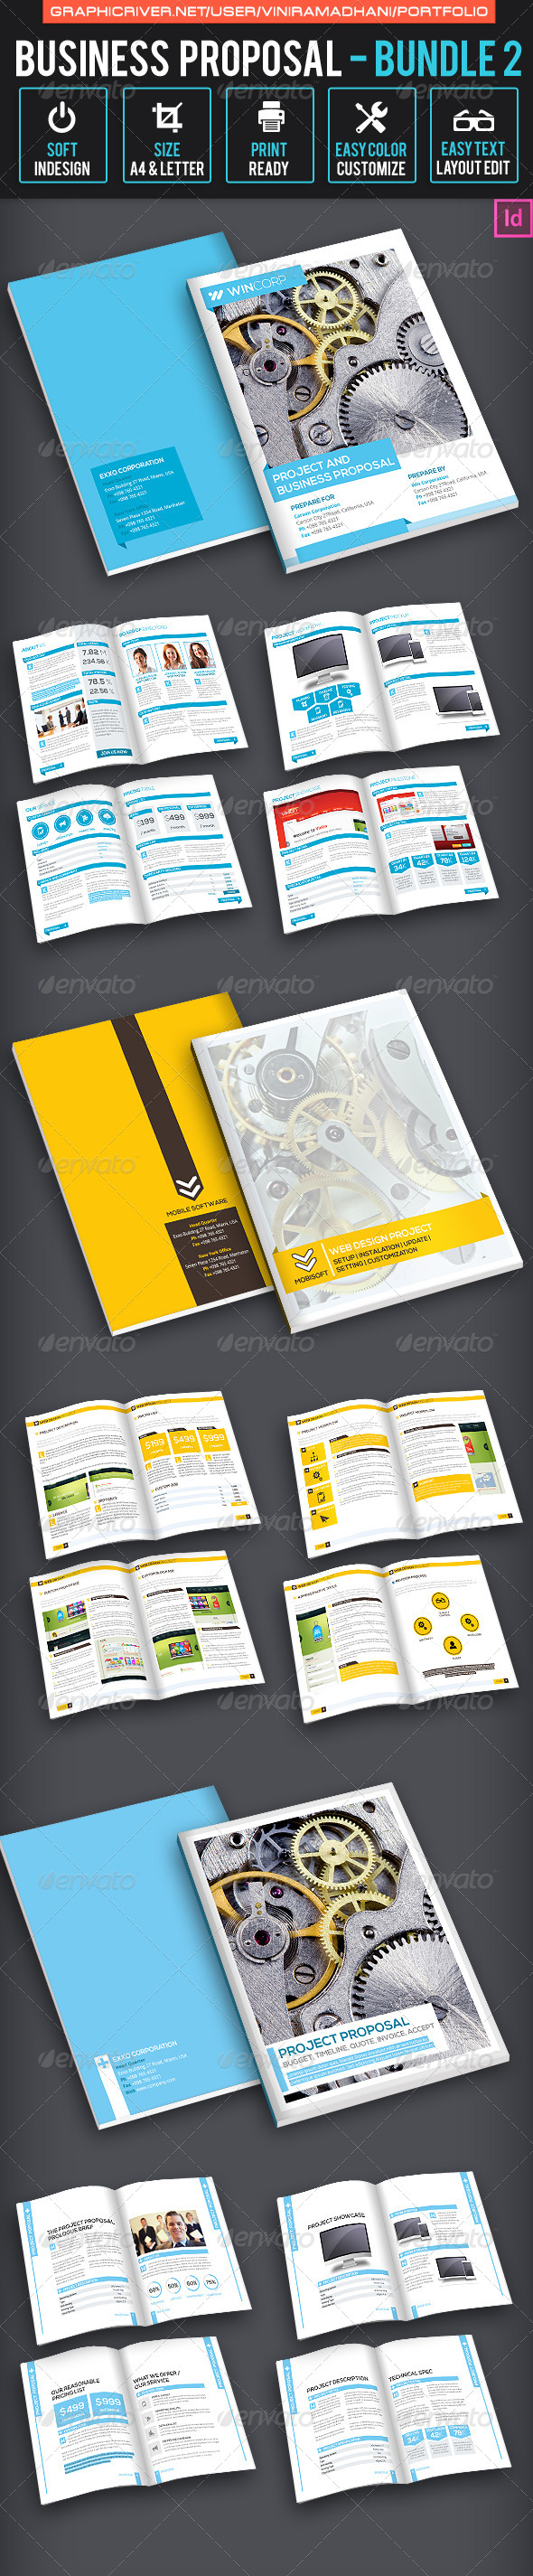 GraphicRiver Business Proposal Bundle 2 7325913